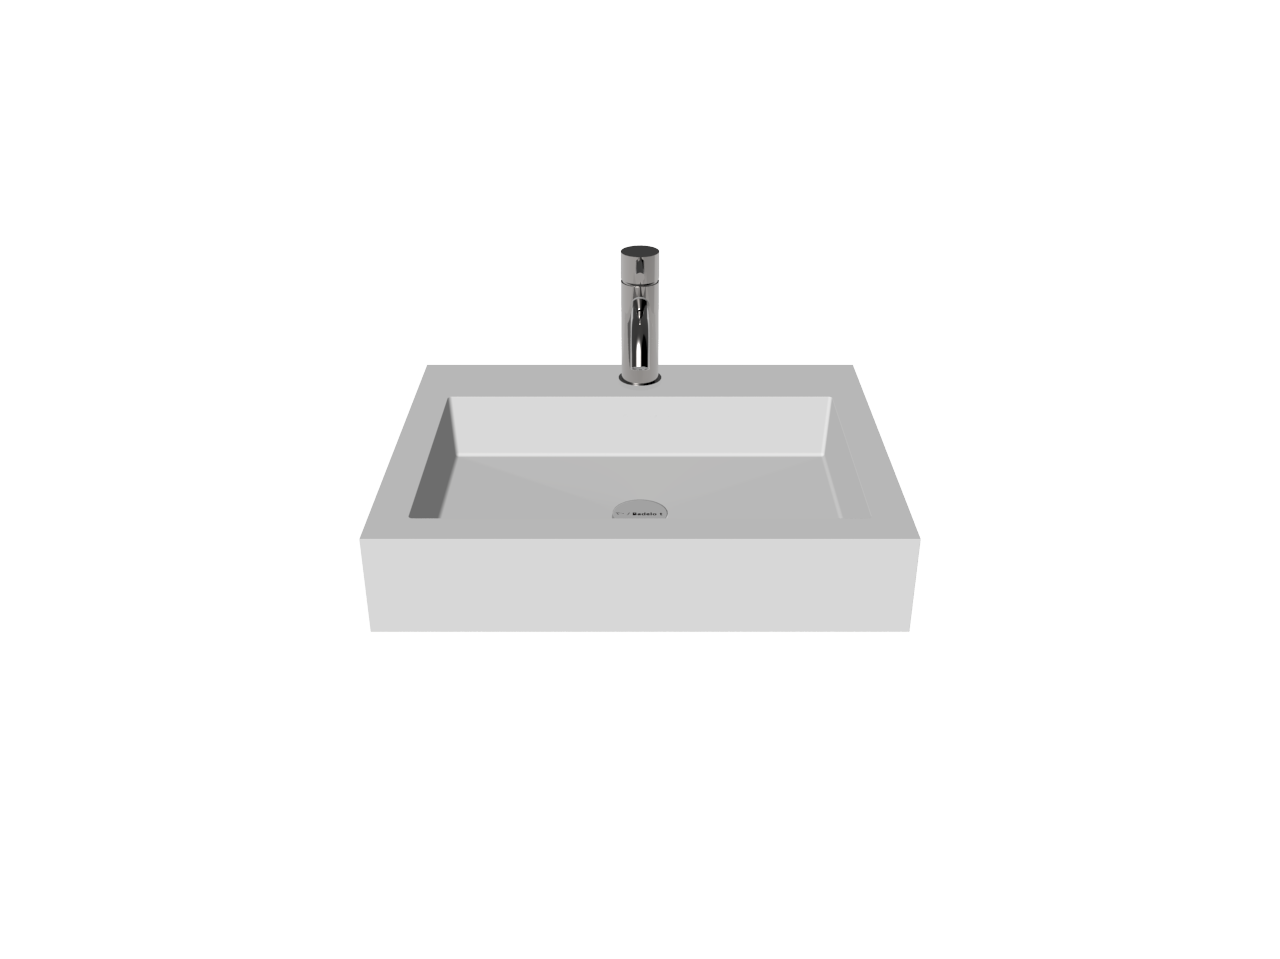 Sink Front View Png Amp Free Sink Front View Png Transparent